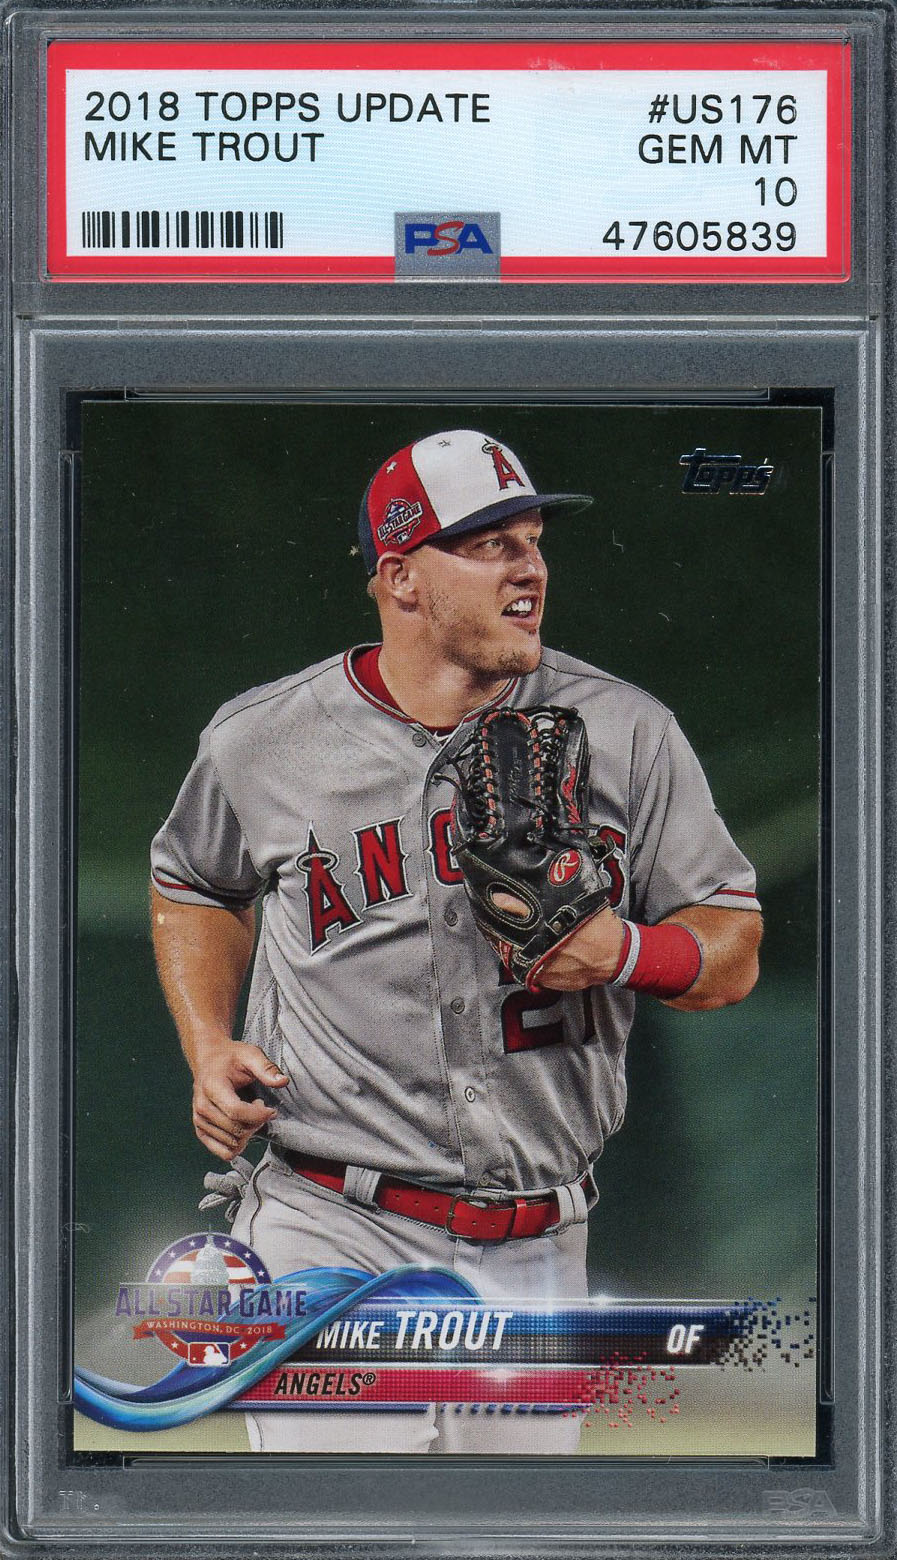 Mike Trout Los Angeles Angels 2018 Topps Update Baseball Card #US176 Graded PSA 10 GEM MINT Mike Trout Los Angeles Angels 2018 Topps Update Baseball Card #US176 Graded PSA 10 GEM MINT